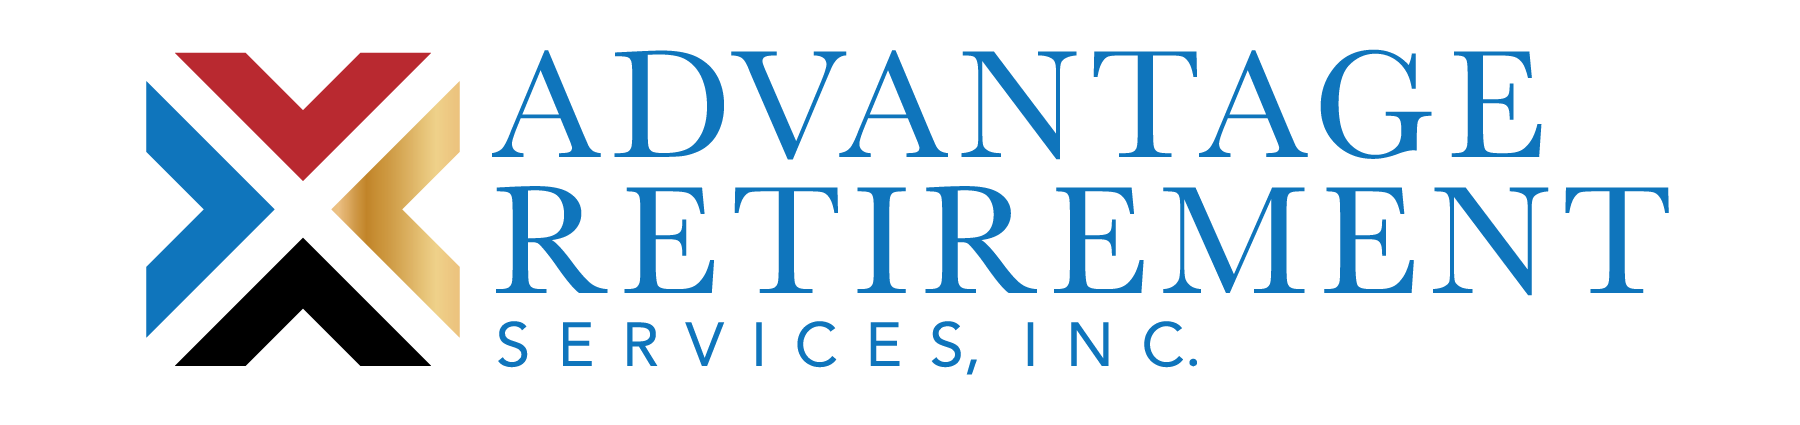 Advantage Retirement Services | Springfield, MO